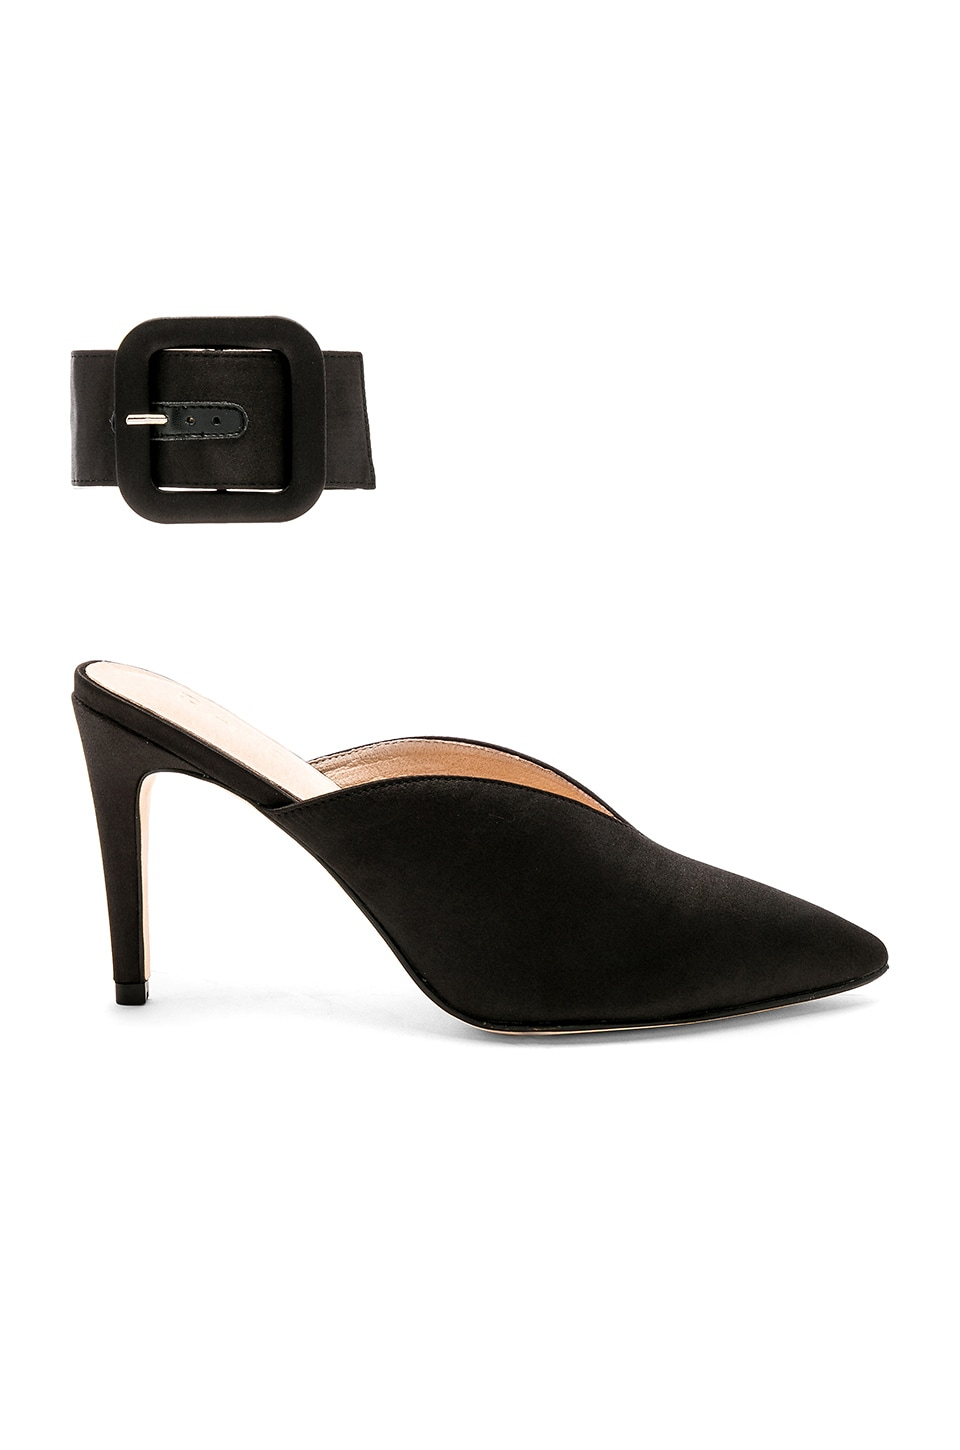 RAYE Buckley Mule in Black